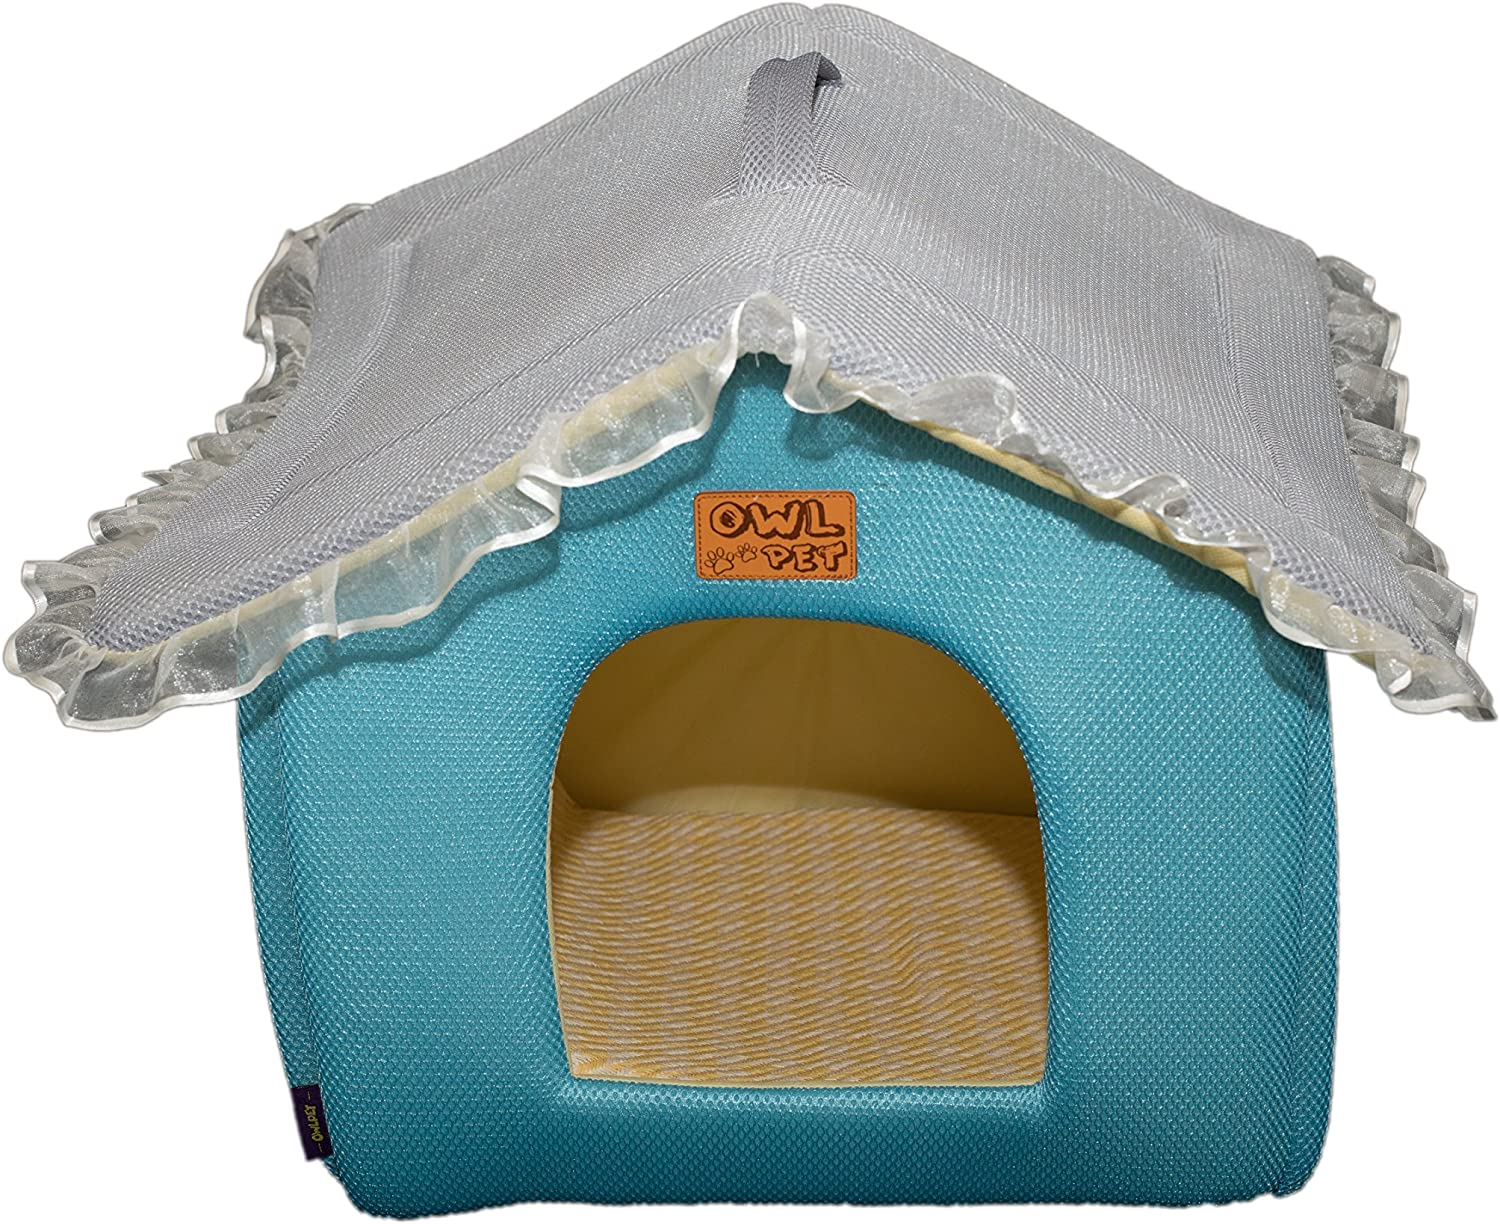 Owl pet soft cute house shaped princess cats dogs pet bed with lace roof and removable washable mattress, small to large, three colors combinations (pink bluee grey). (M, bluee and grey)